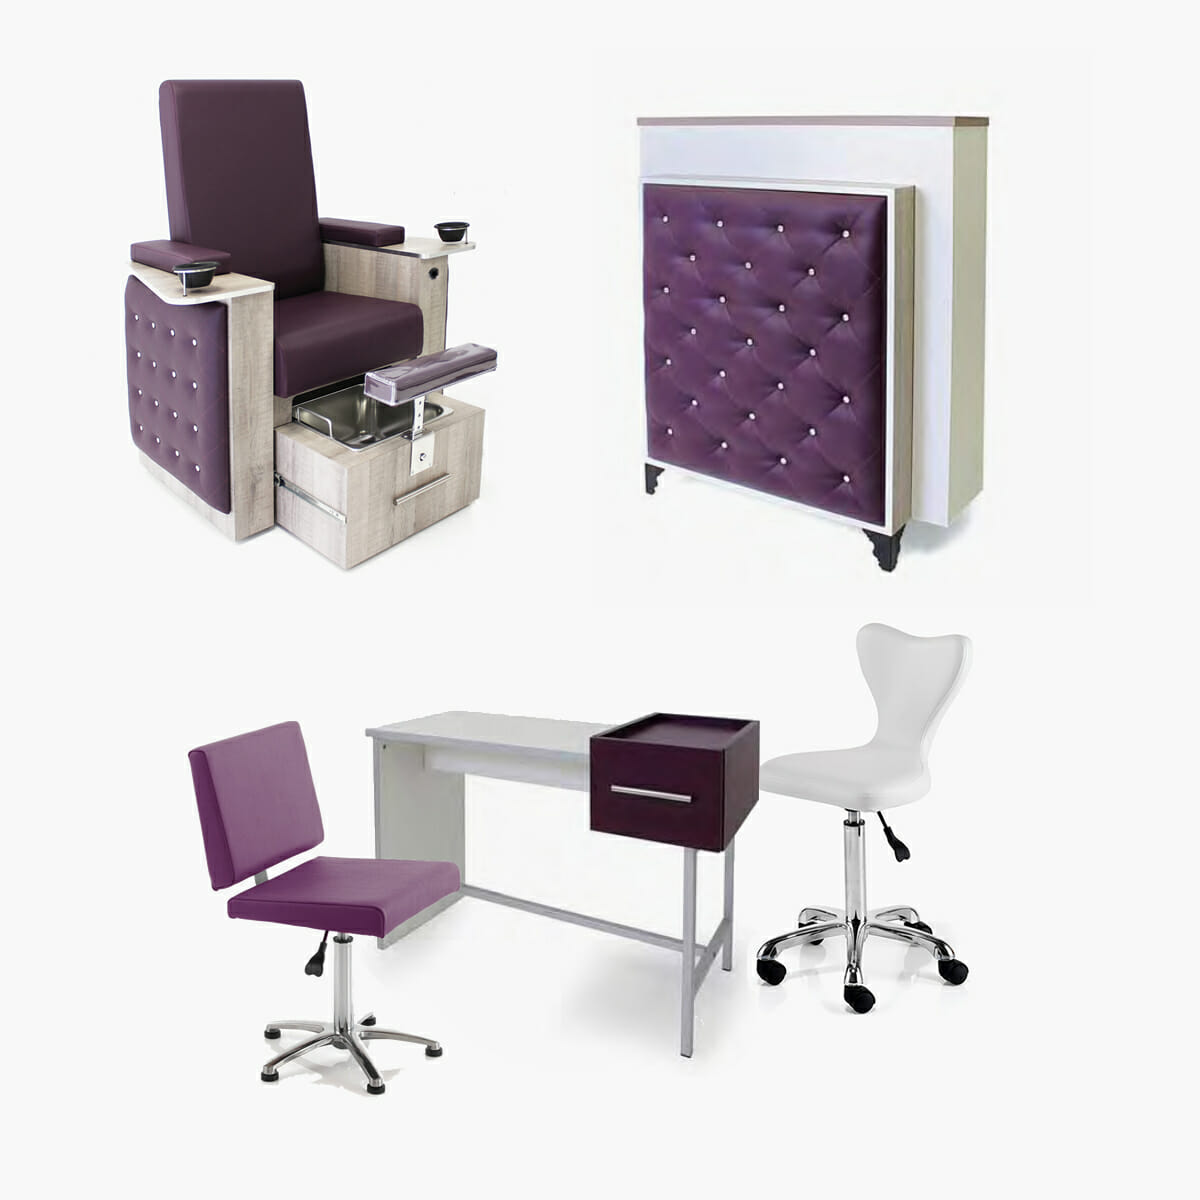 Deals In Furniture: REM Bliss Beauty Furniture Package